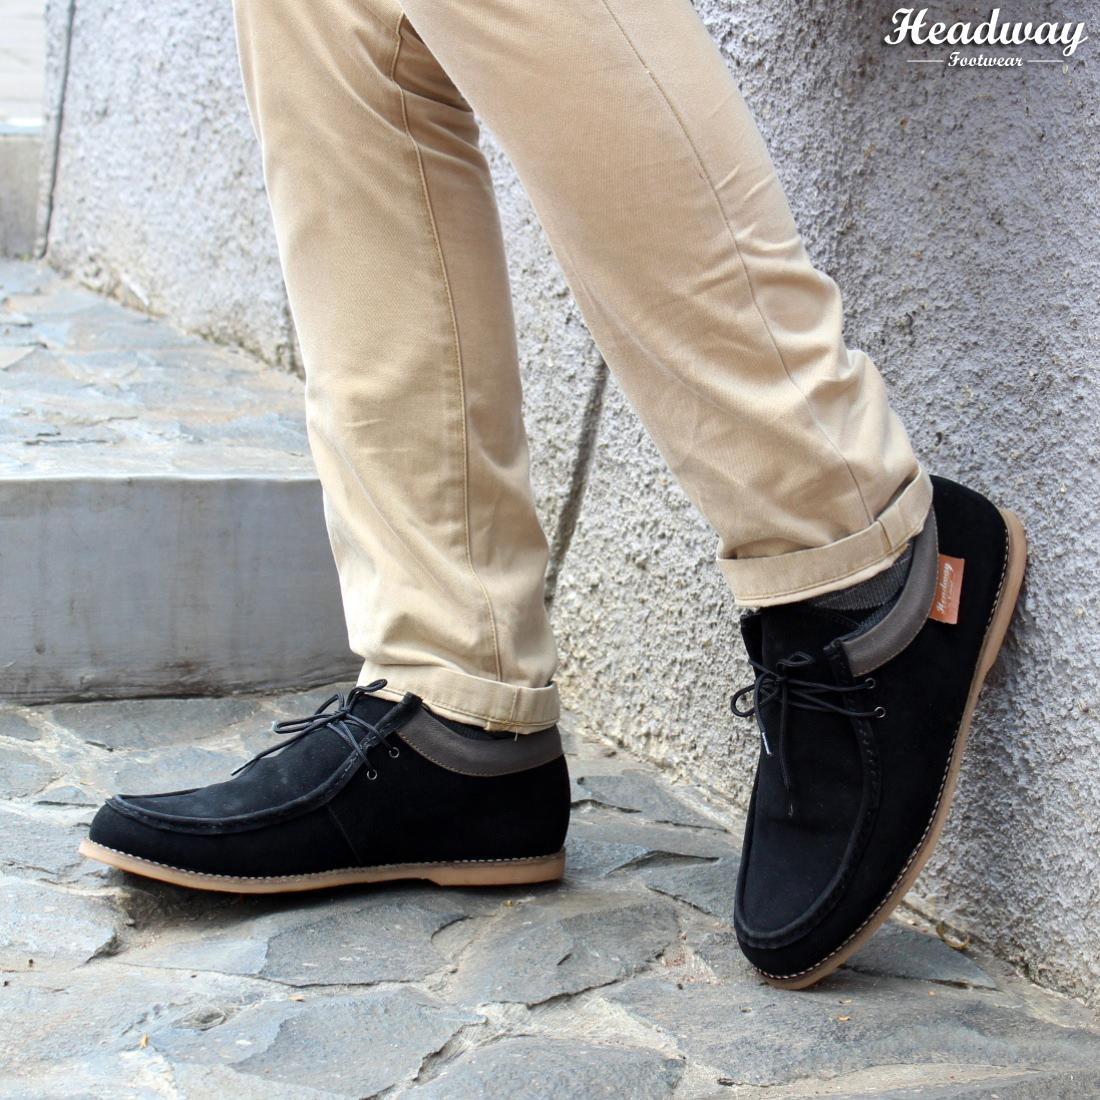 Buy Sell Cheapest Headway 42 Regal Best Quality Product Deals Infinite Black Tan Sepatu Casual 05 Loyal